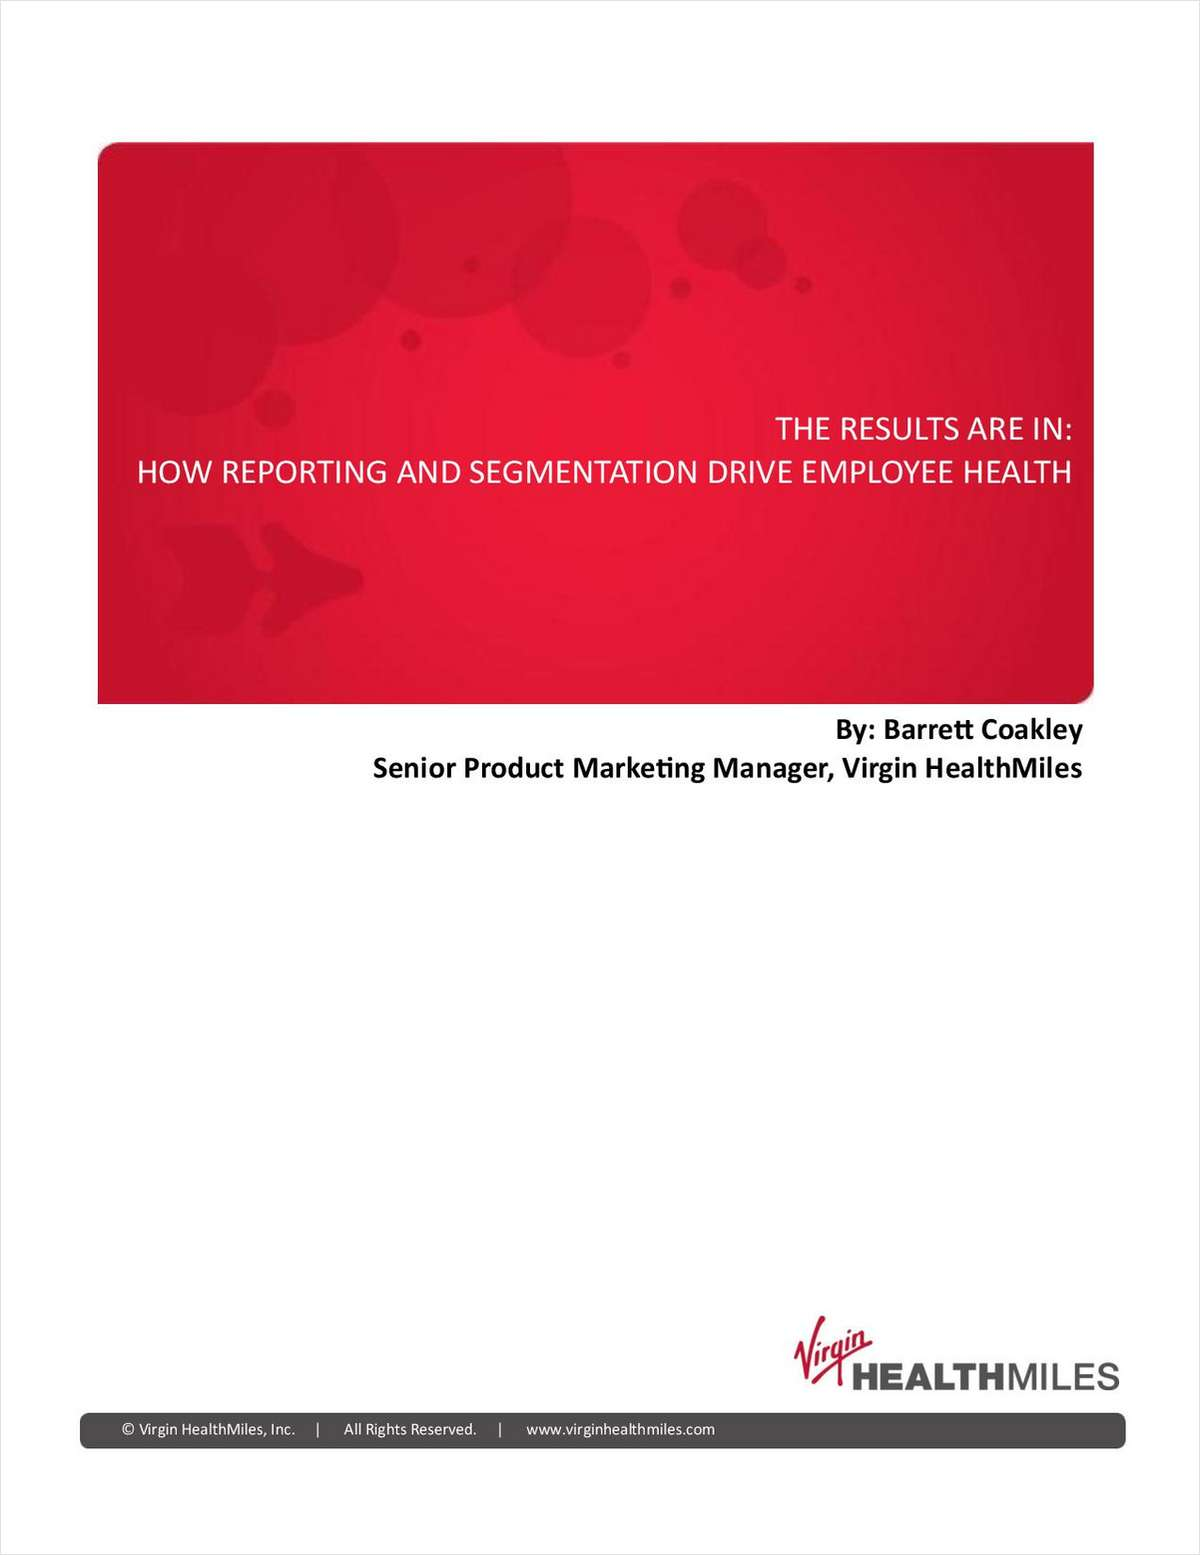 The Results Are In: How Reporting and Segmentation Drive Employee Health